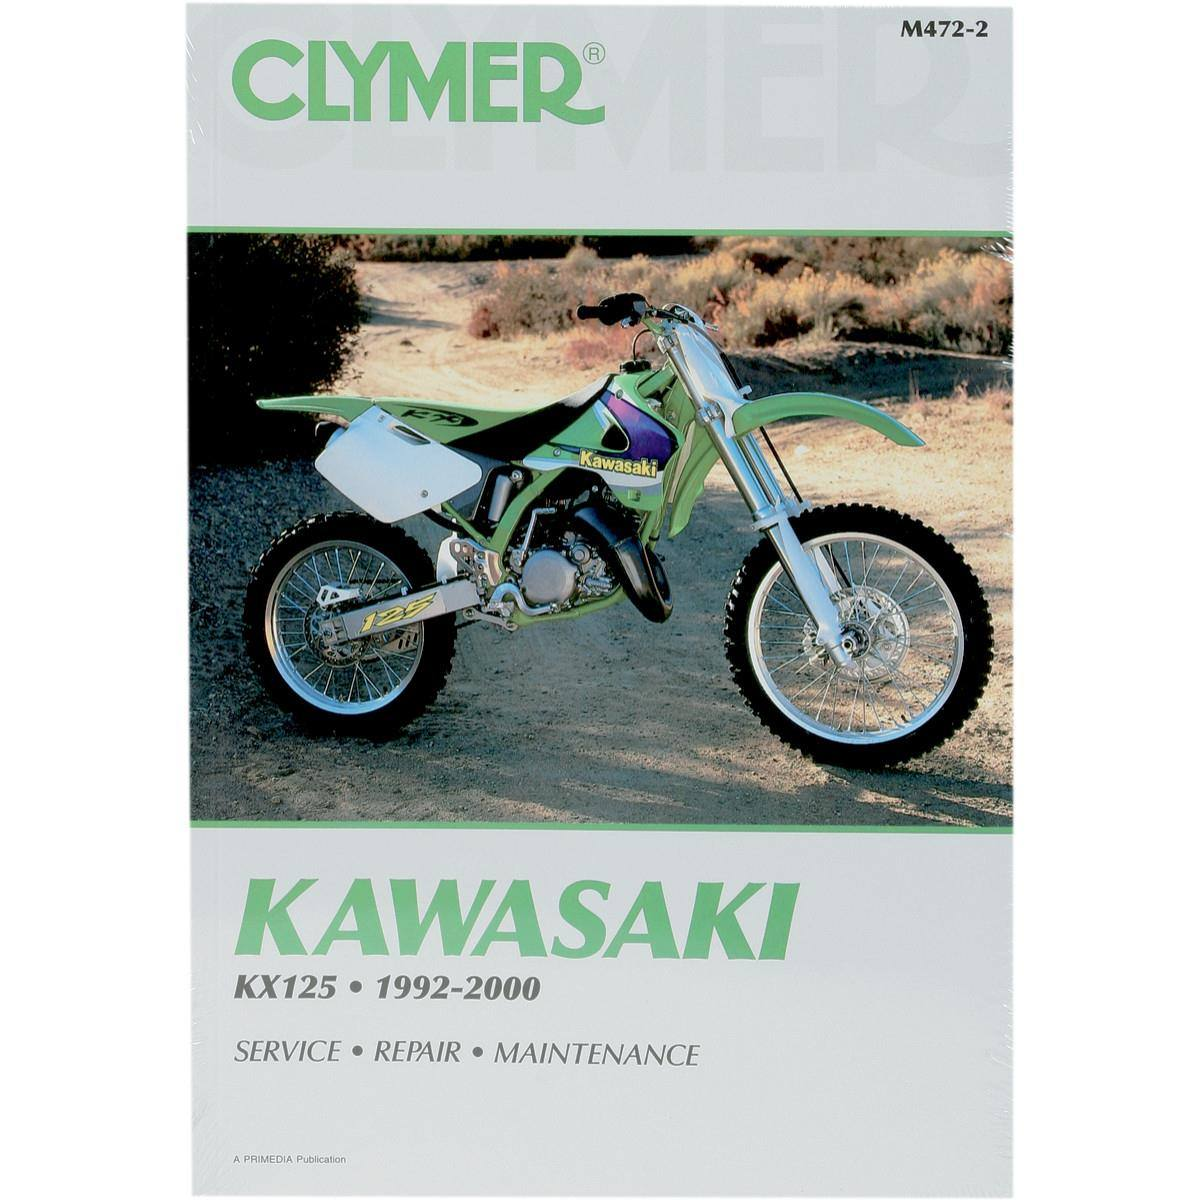 Repair Manuals For Sale In Imlay City Mi Labarons Power Sports Honda Cb Cj250 Electrical Wiring Diagram 810 798 2035